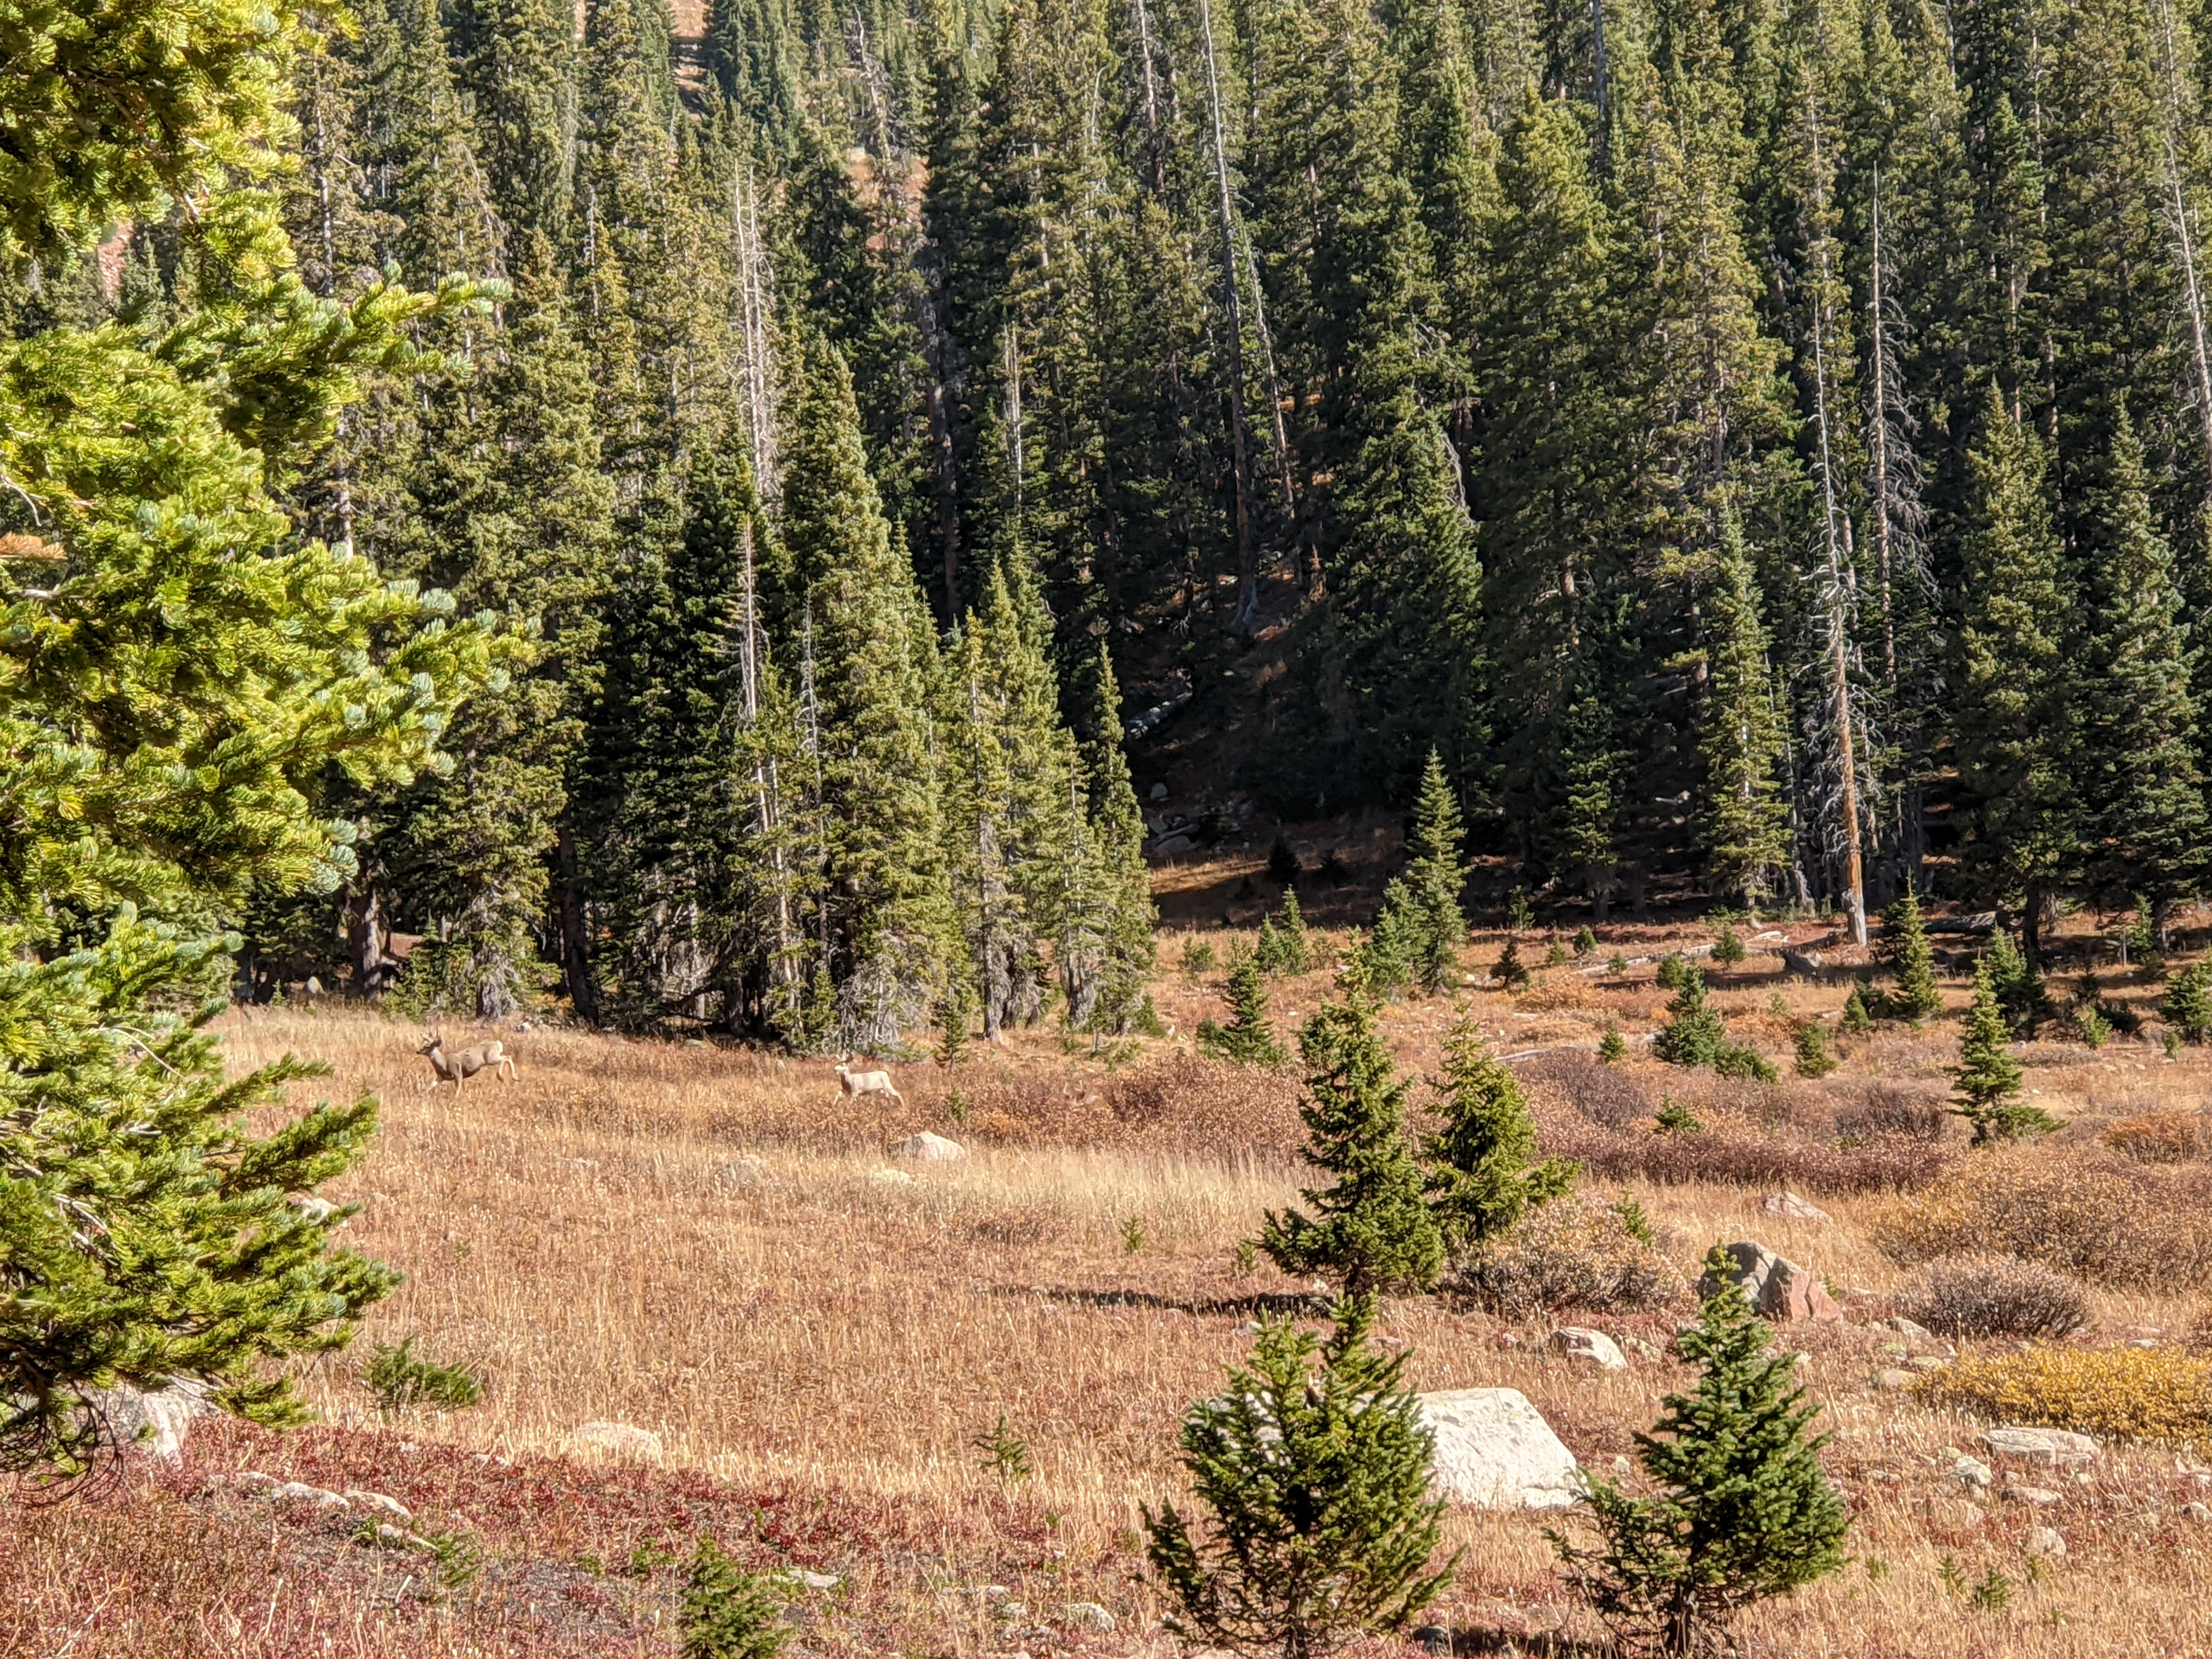 Mule deer careening down the mountain in the Eagles Nest Wilderness.